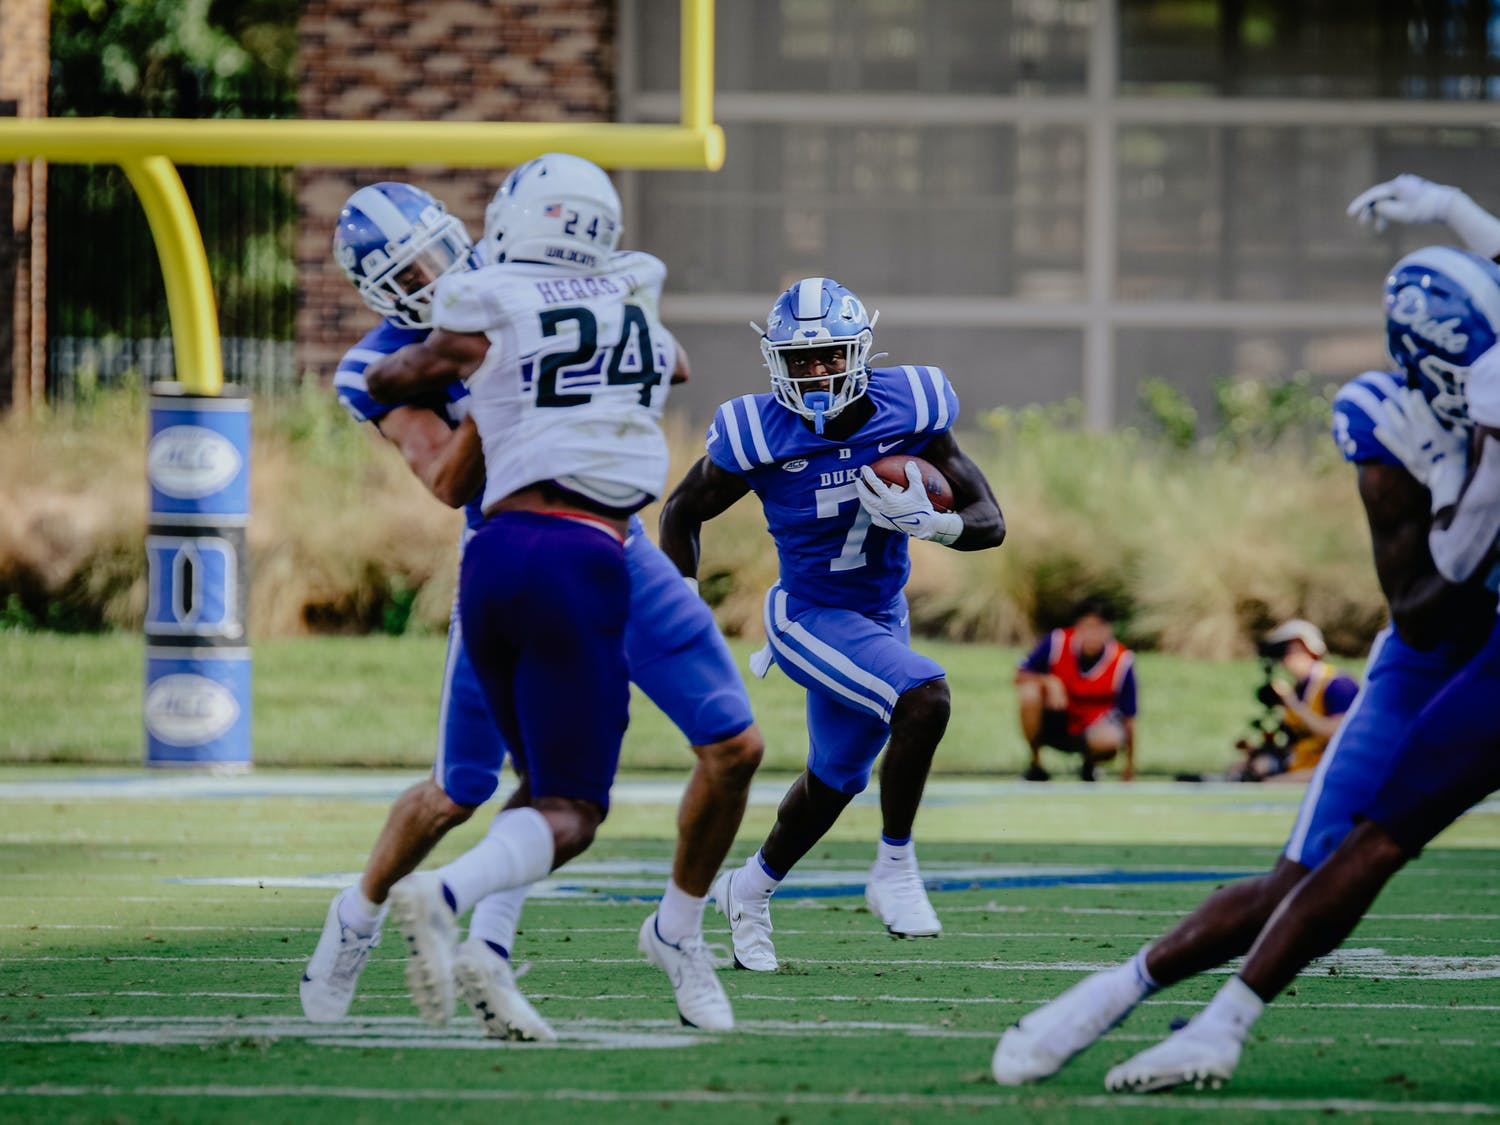 In a Saturday evening game, the Wildcats valiantly clawed their into a sizeable large Duke Blue Devil lead during the second half, but the Blue Devils hang on, winning the game over the Wildcats 30-23. Photos by Staff Photographer Aaron Zhao and Associate Editor Zoé Murphy.